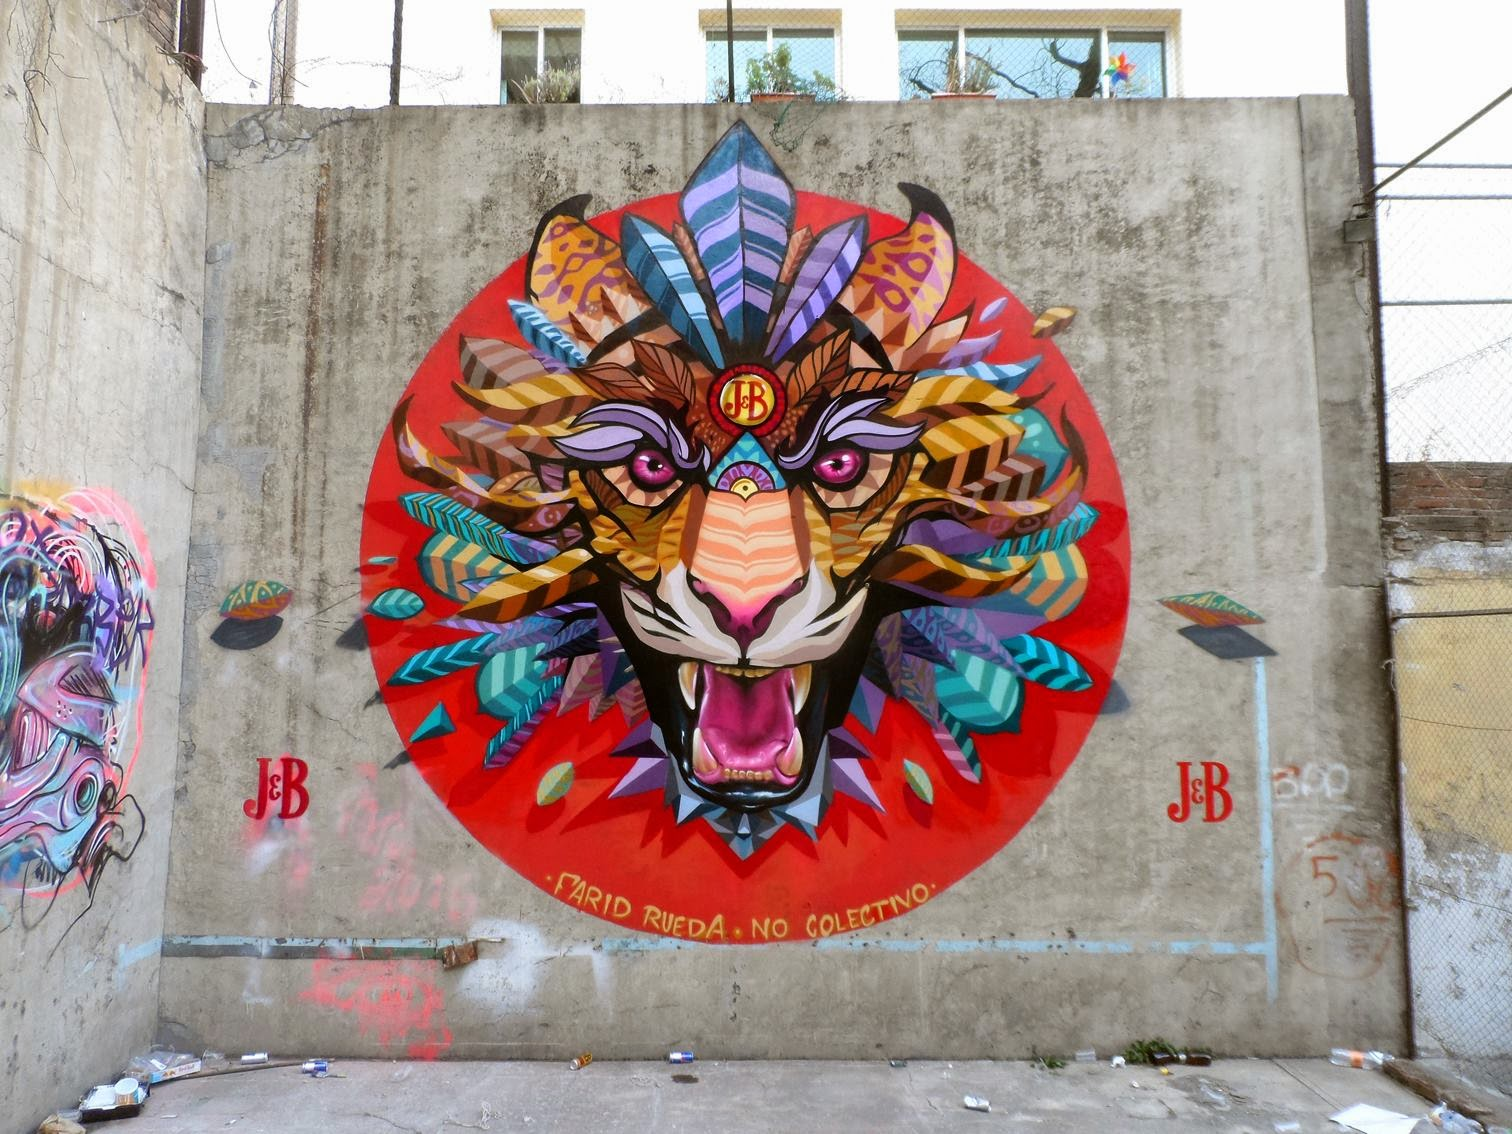 Farid rueda unveils a new series of murals on the streets for Mural street art